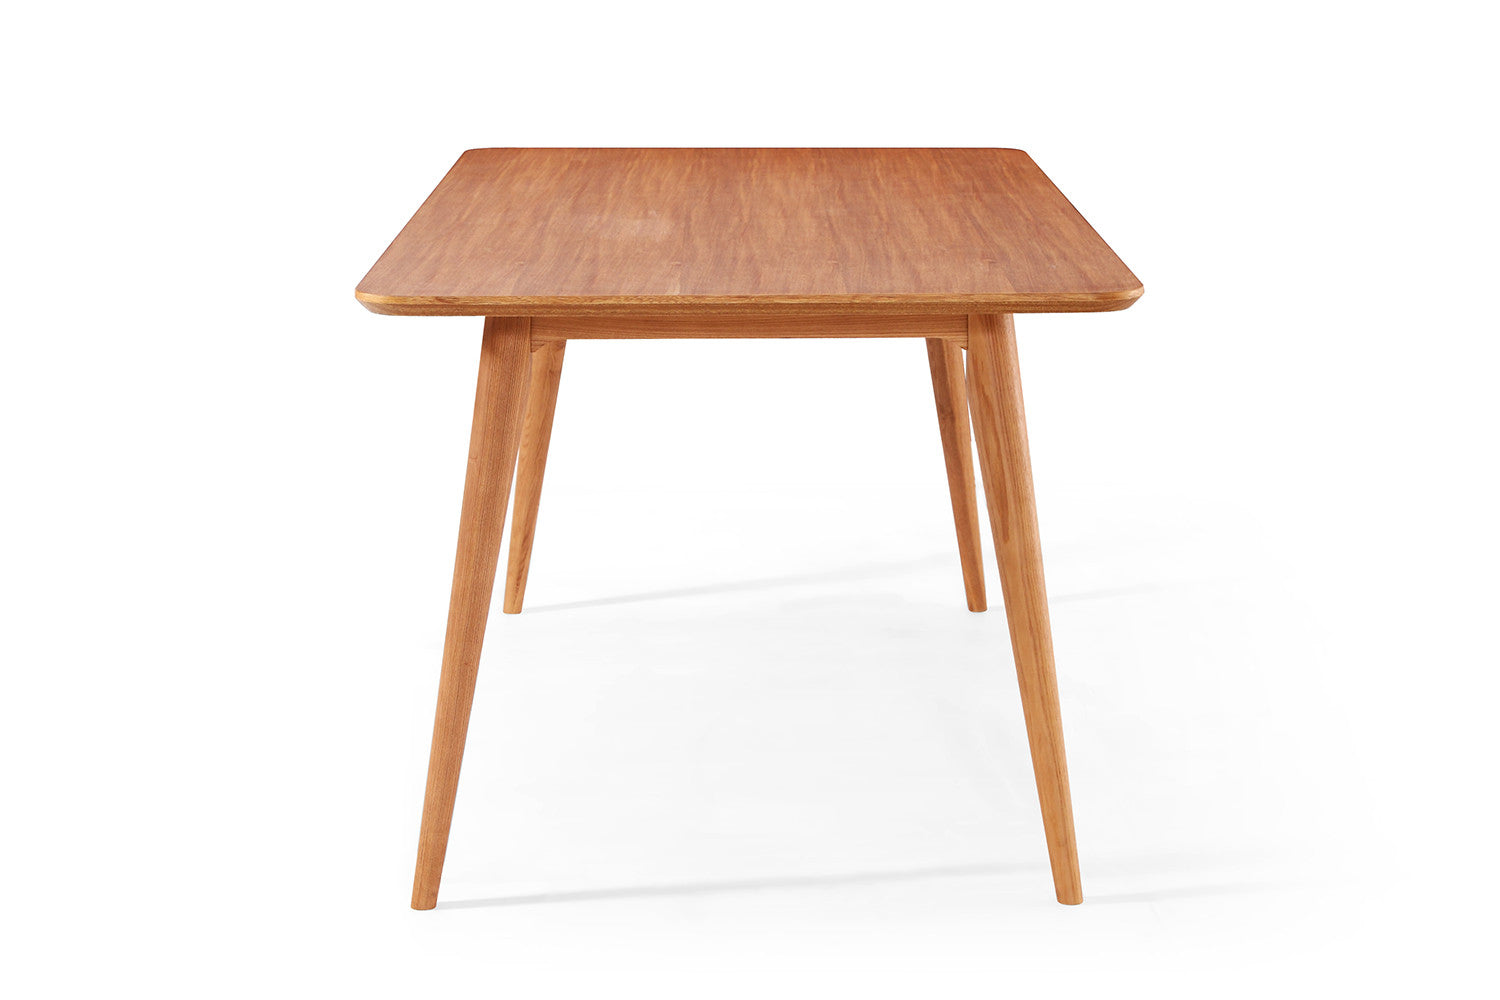 Table de salle manger design en bois julia dewarens for Table salle a manger grande dimension